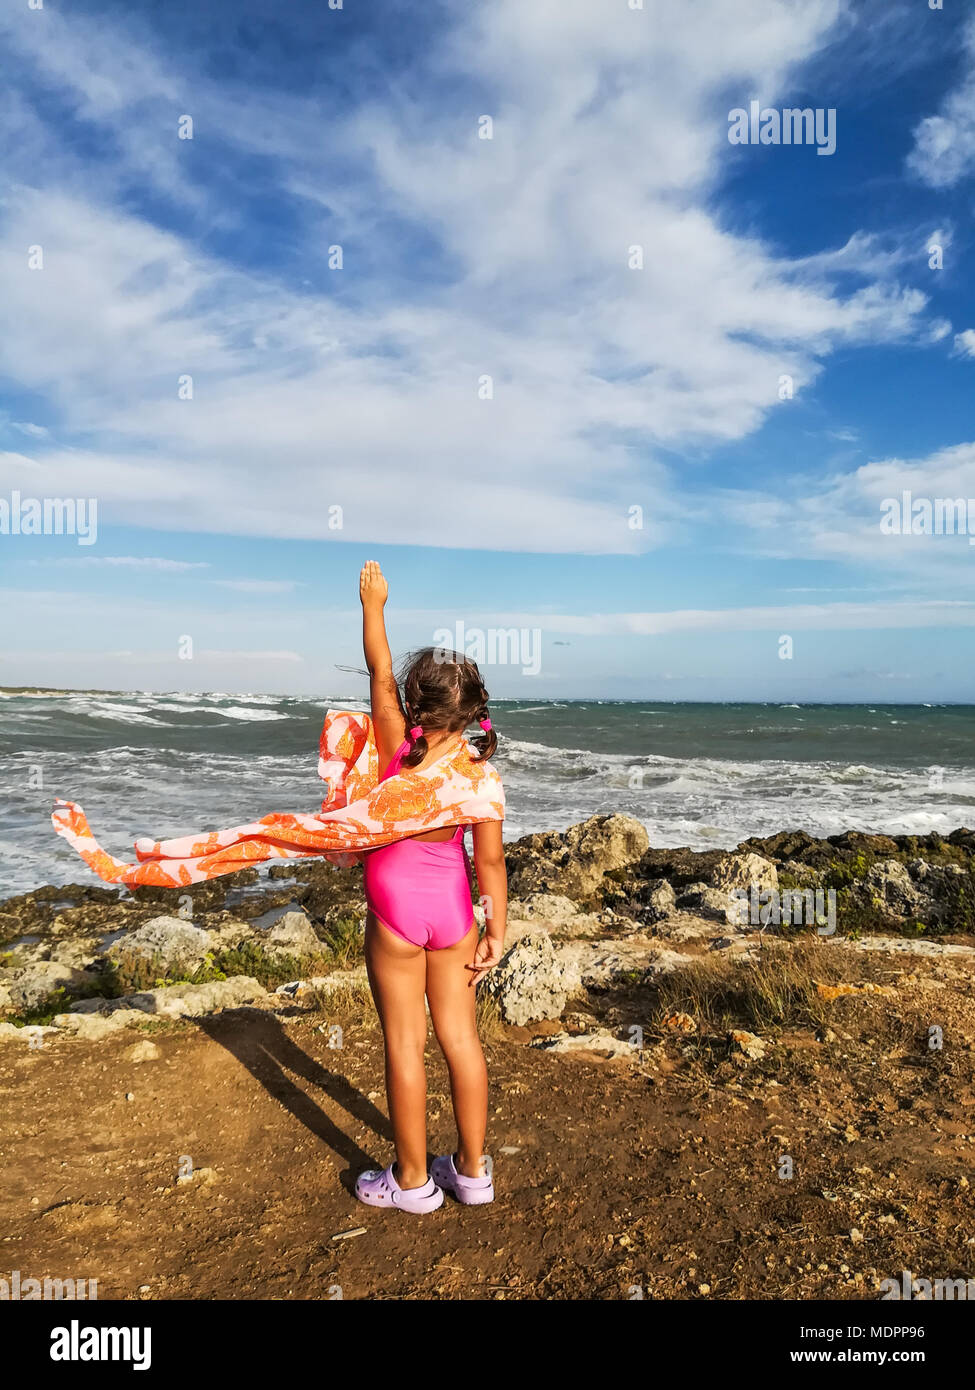 A little 'supergirl' in front of sea. - Stock Image